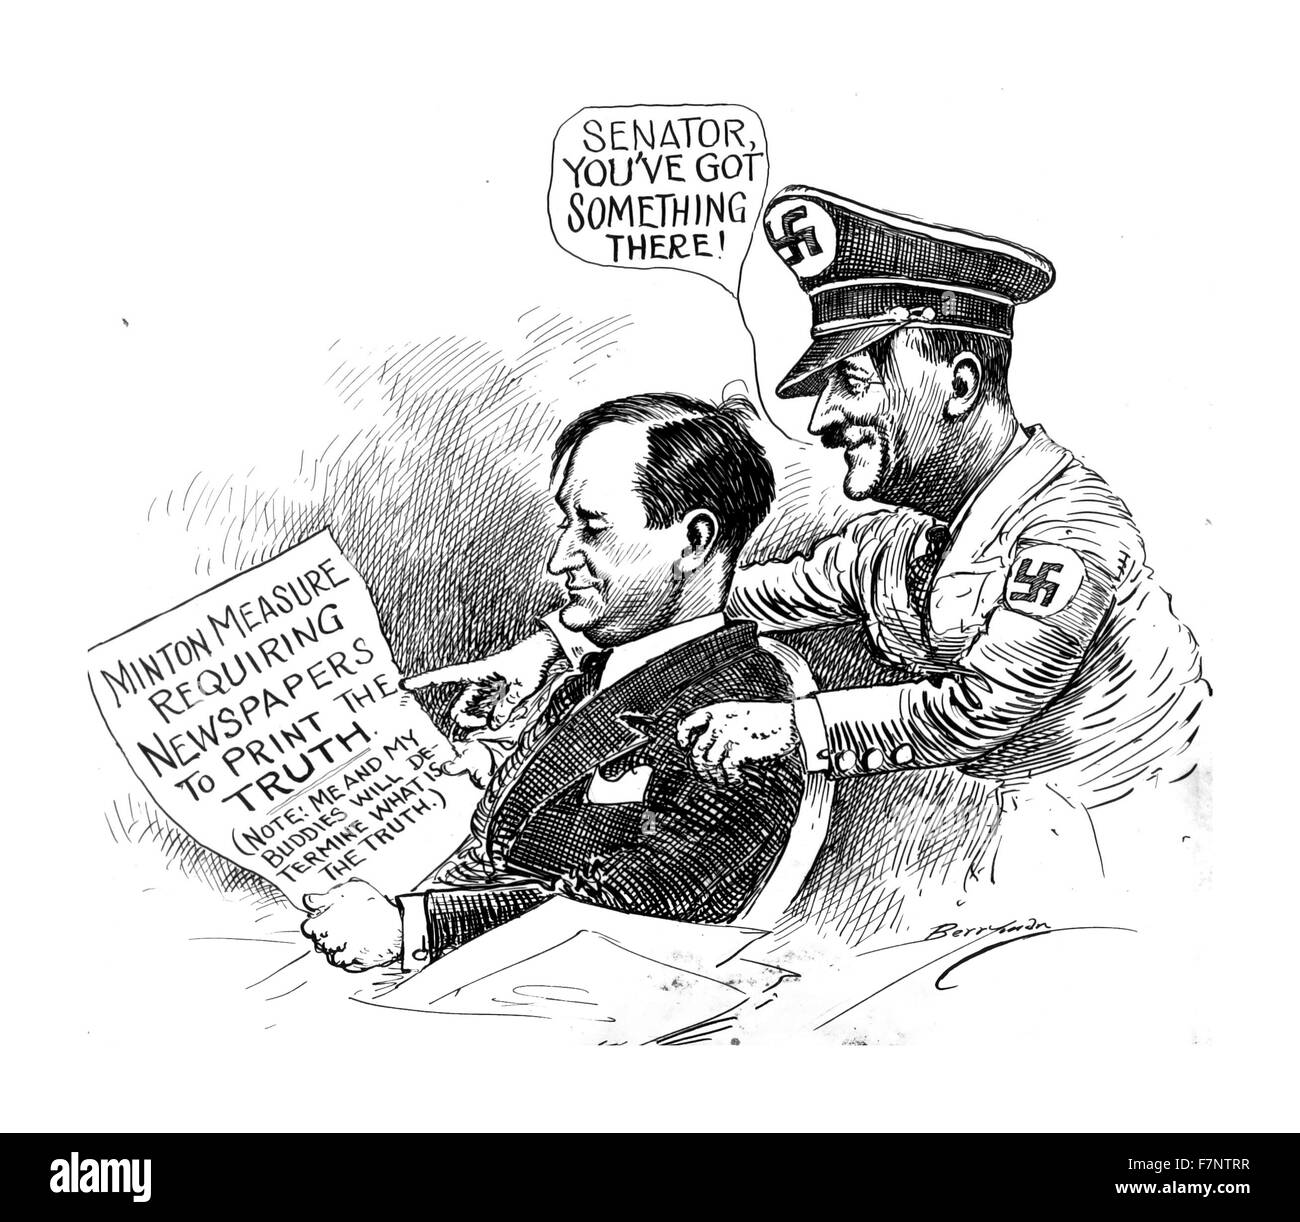 Political Satire From The Berryman Political Cartoon Collection